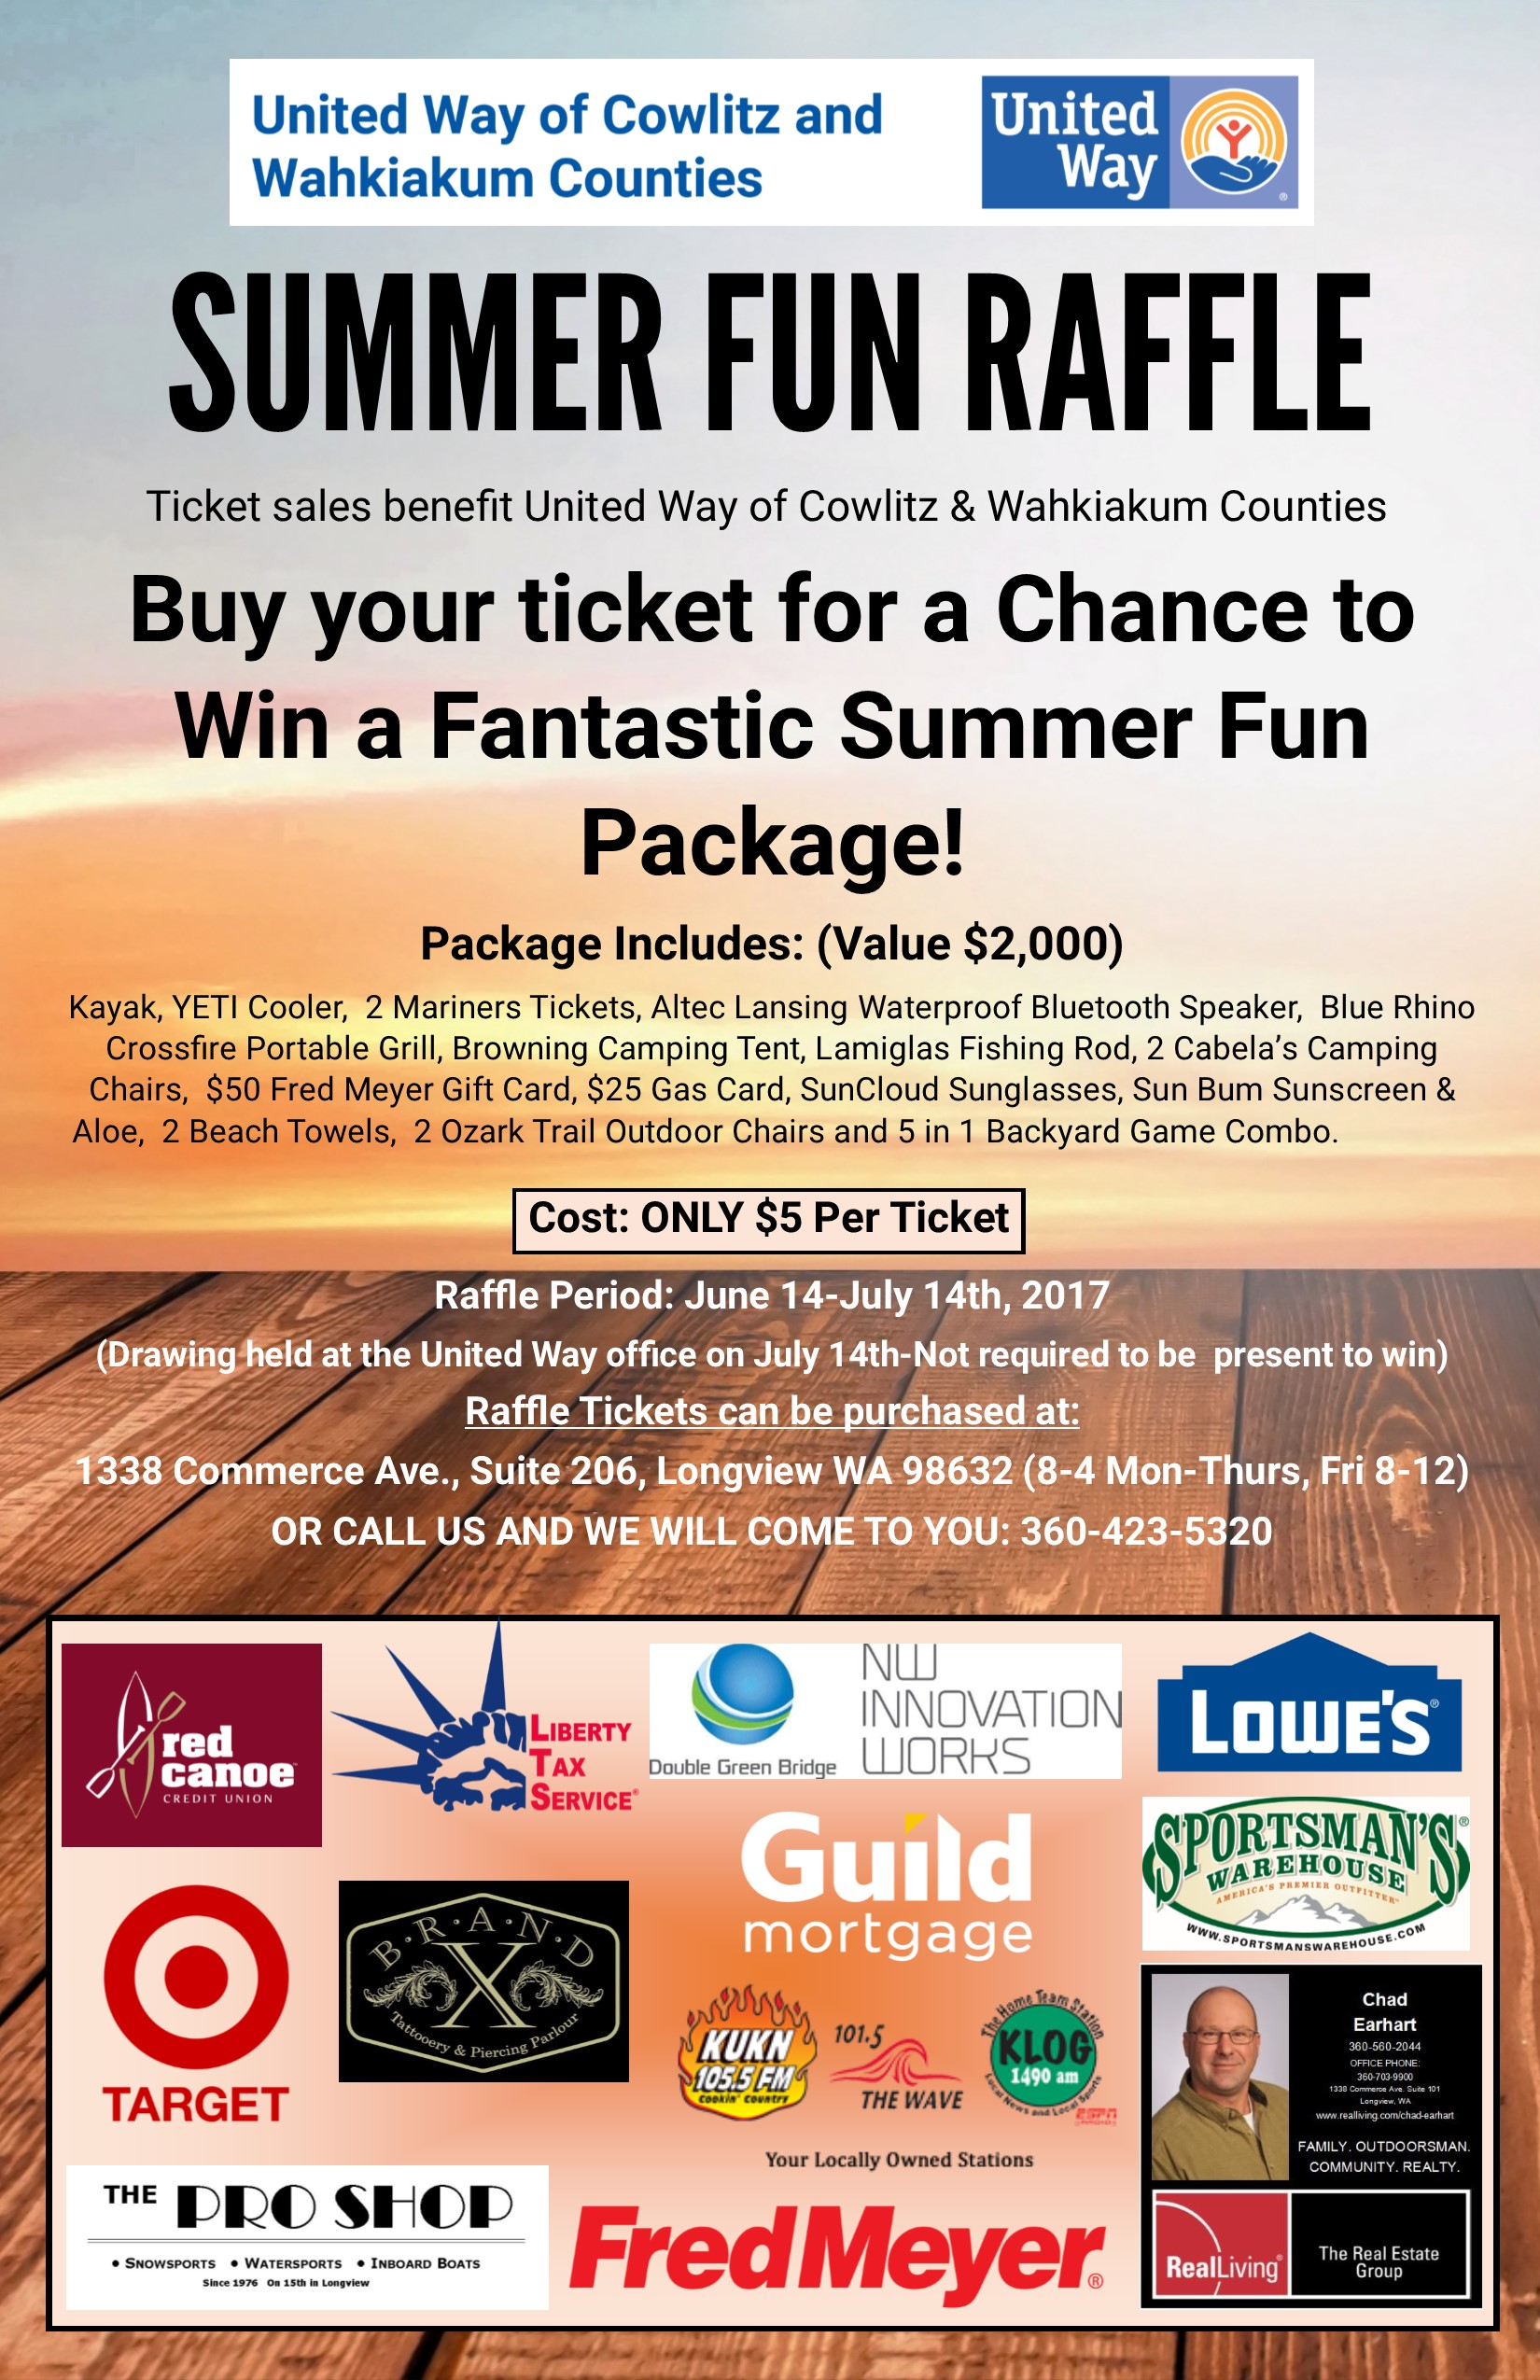 United Way Of Cowlitz And Wahkiakum Counties Summer Fun